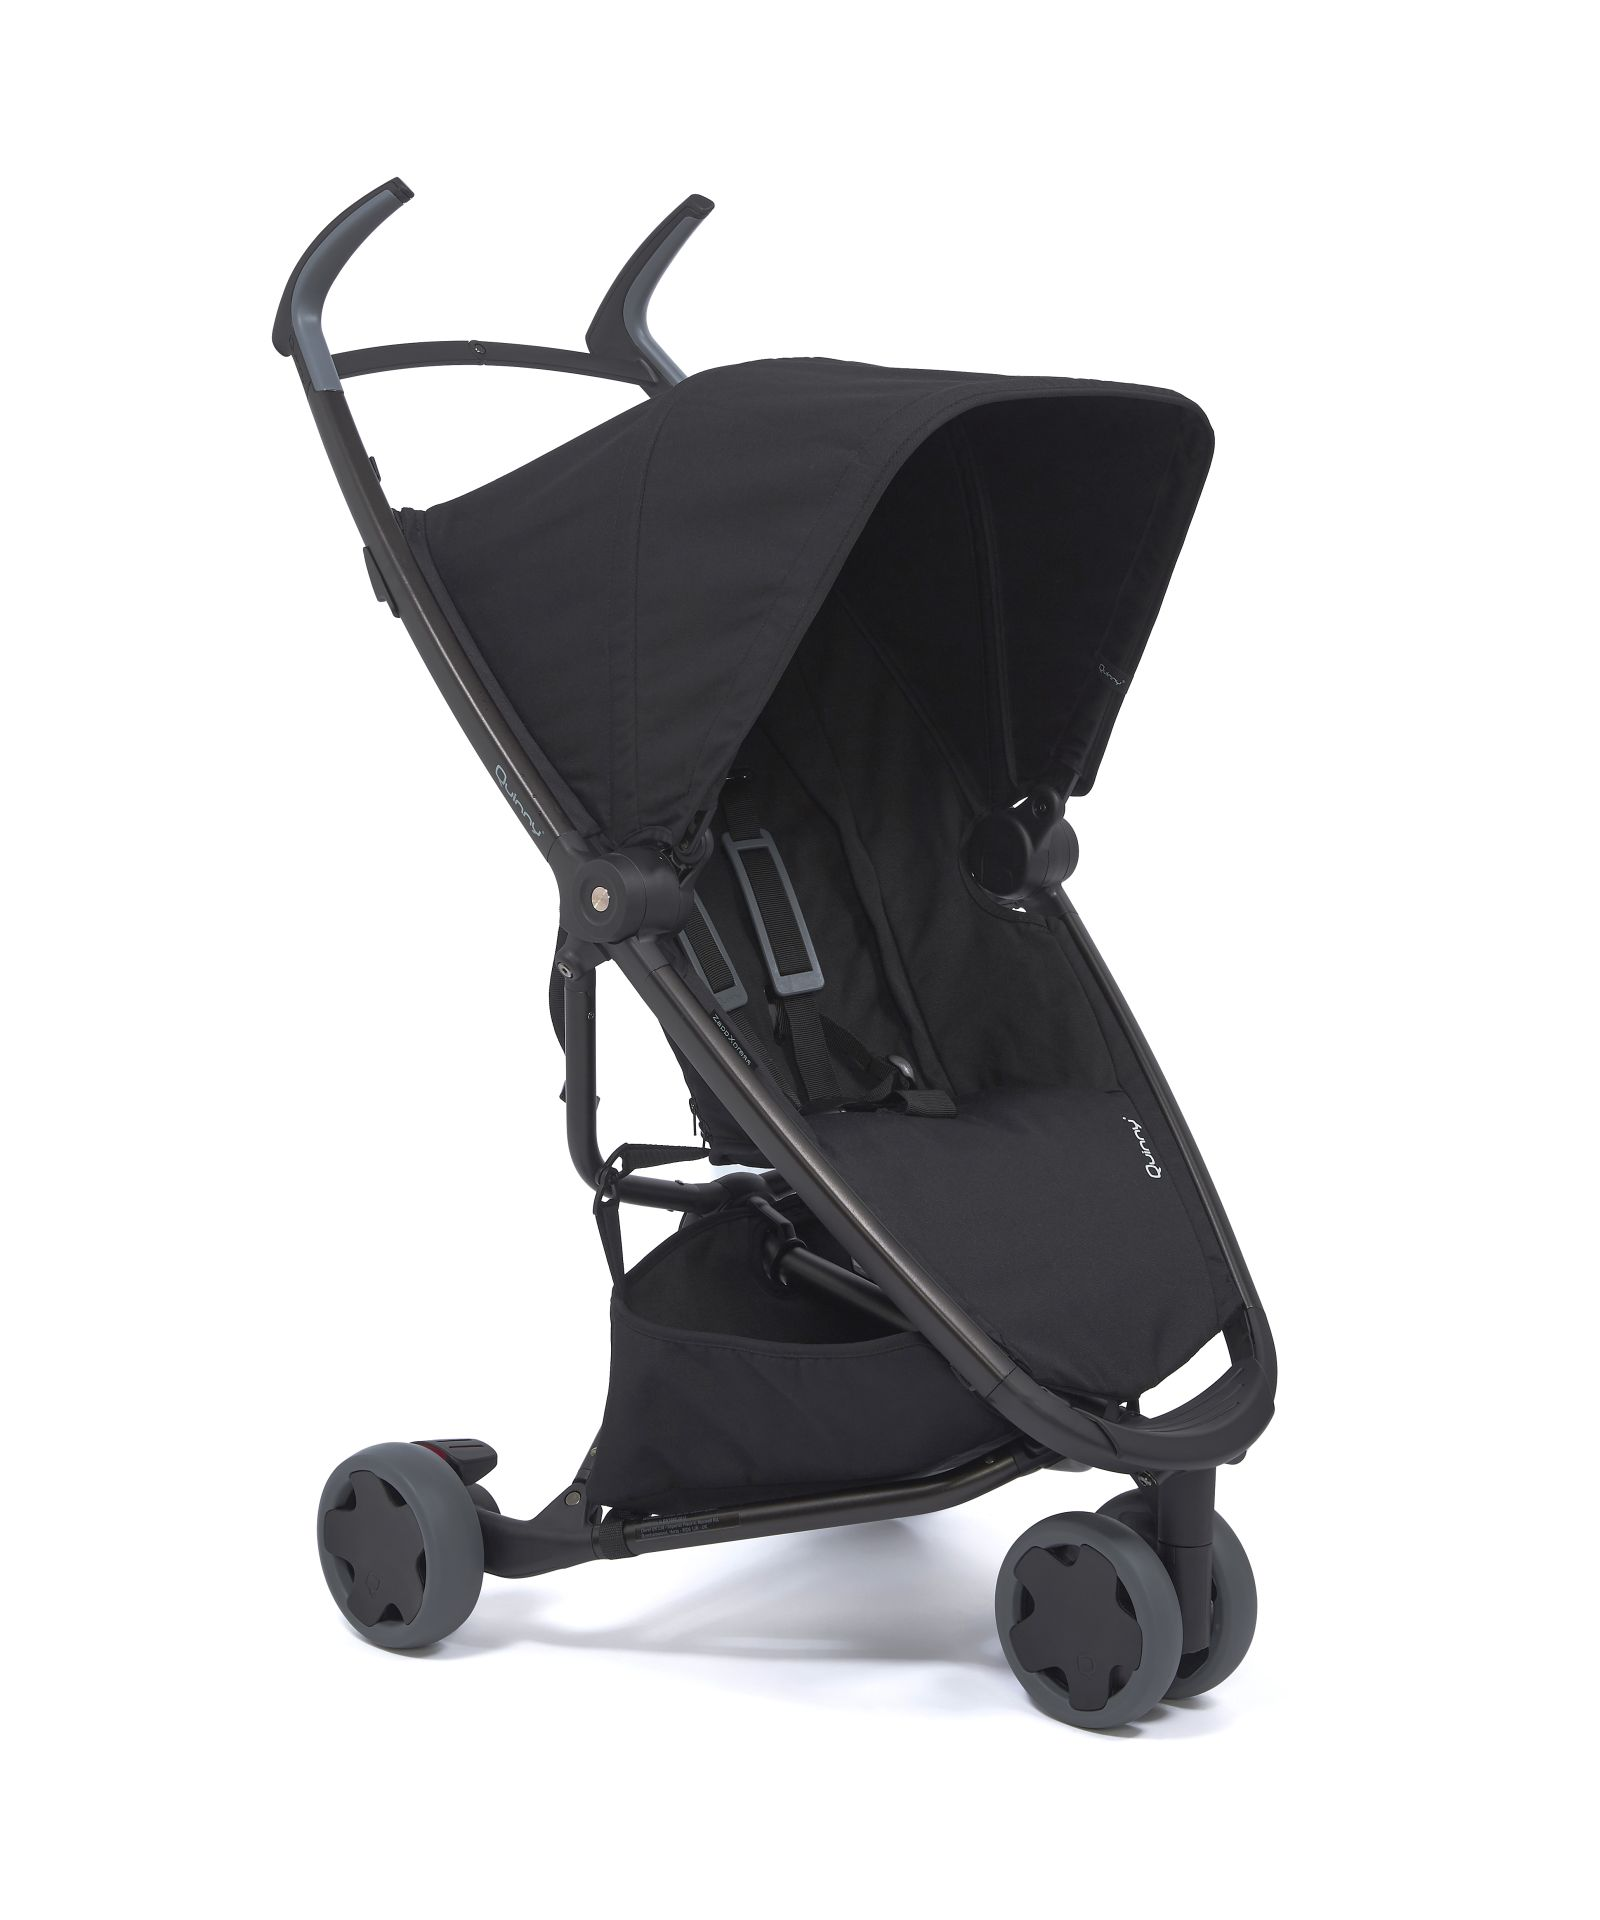 quinny buggy zapp xpress 2018 all black buy at kidsroom strollers. Black Bedroom Furniture Sets. Home Design Ideas